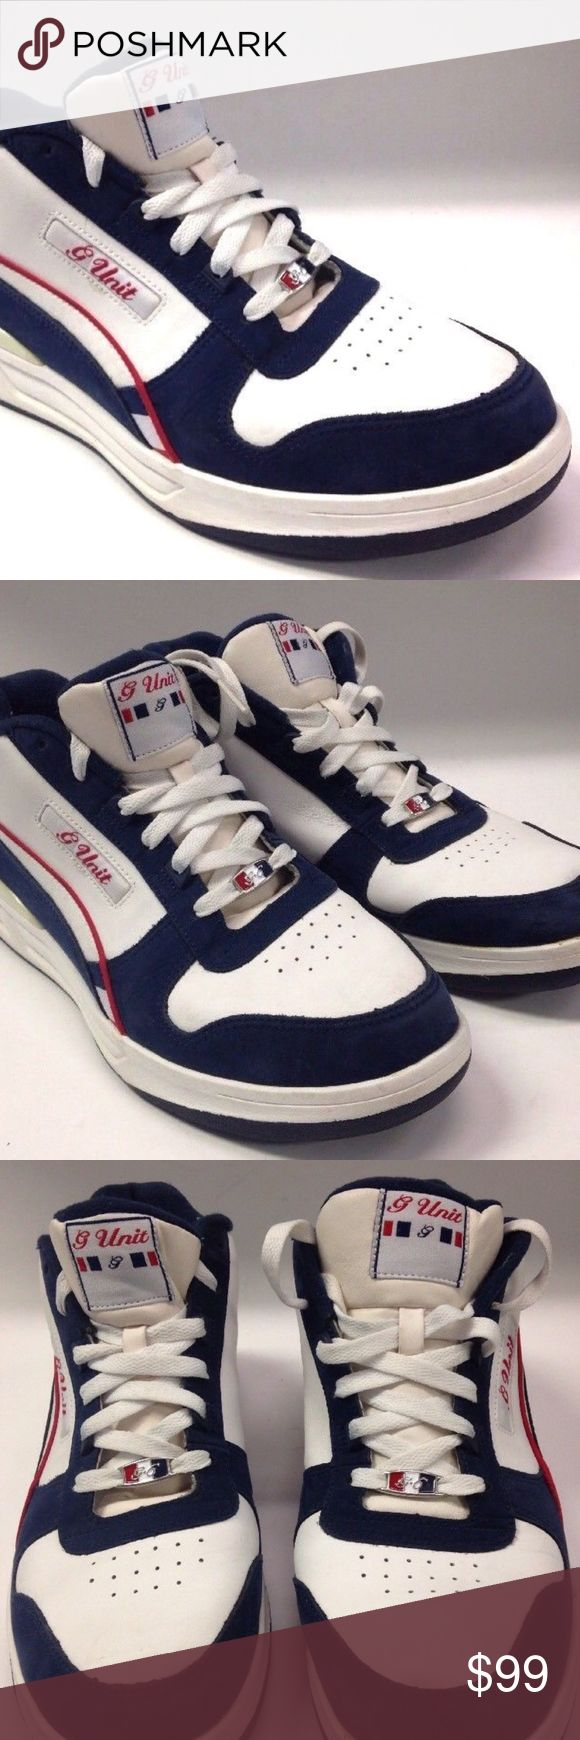 REEBOK G UNIT SNEAKERS SHOES OLD SCHOOL REEBOK G UNIT SNEAKERS  MEN SIZE 11 US  EXCELLENT USED CONDITION, LIGHT WEAR NICE & CLEAN Reebok Shoes Sneakers